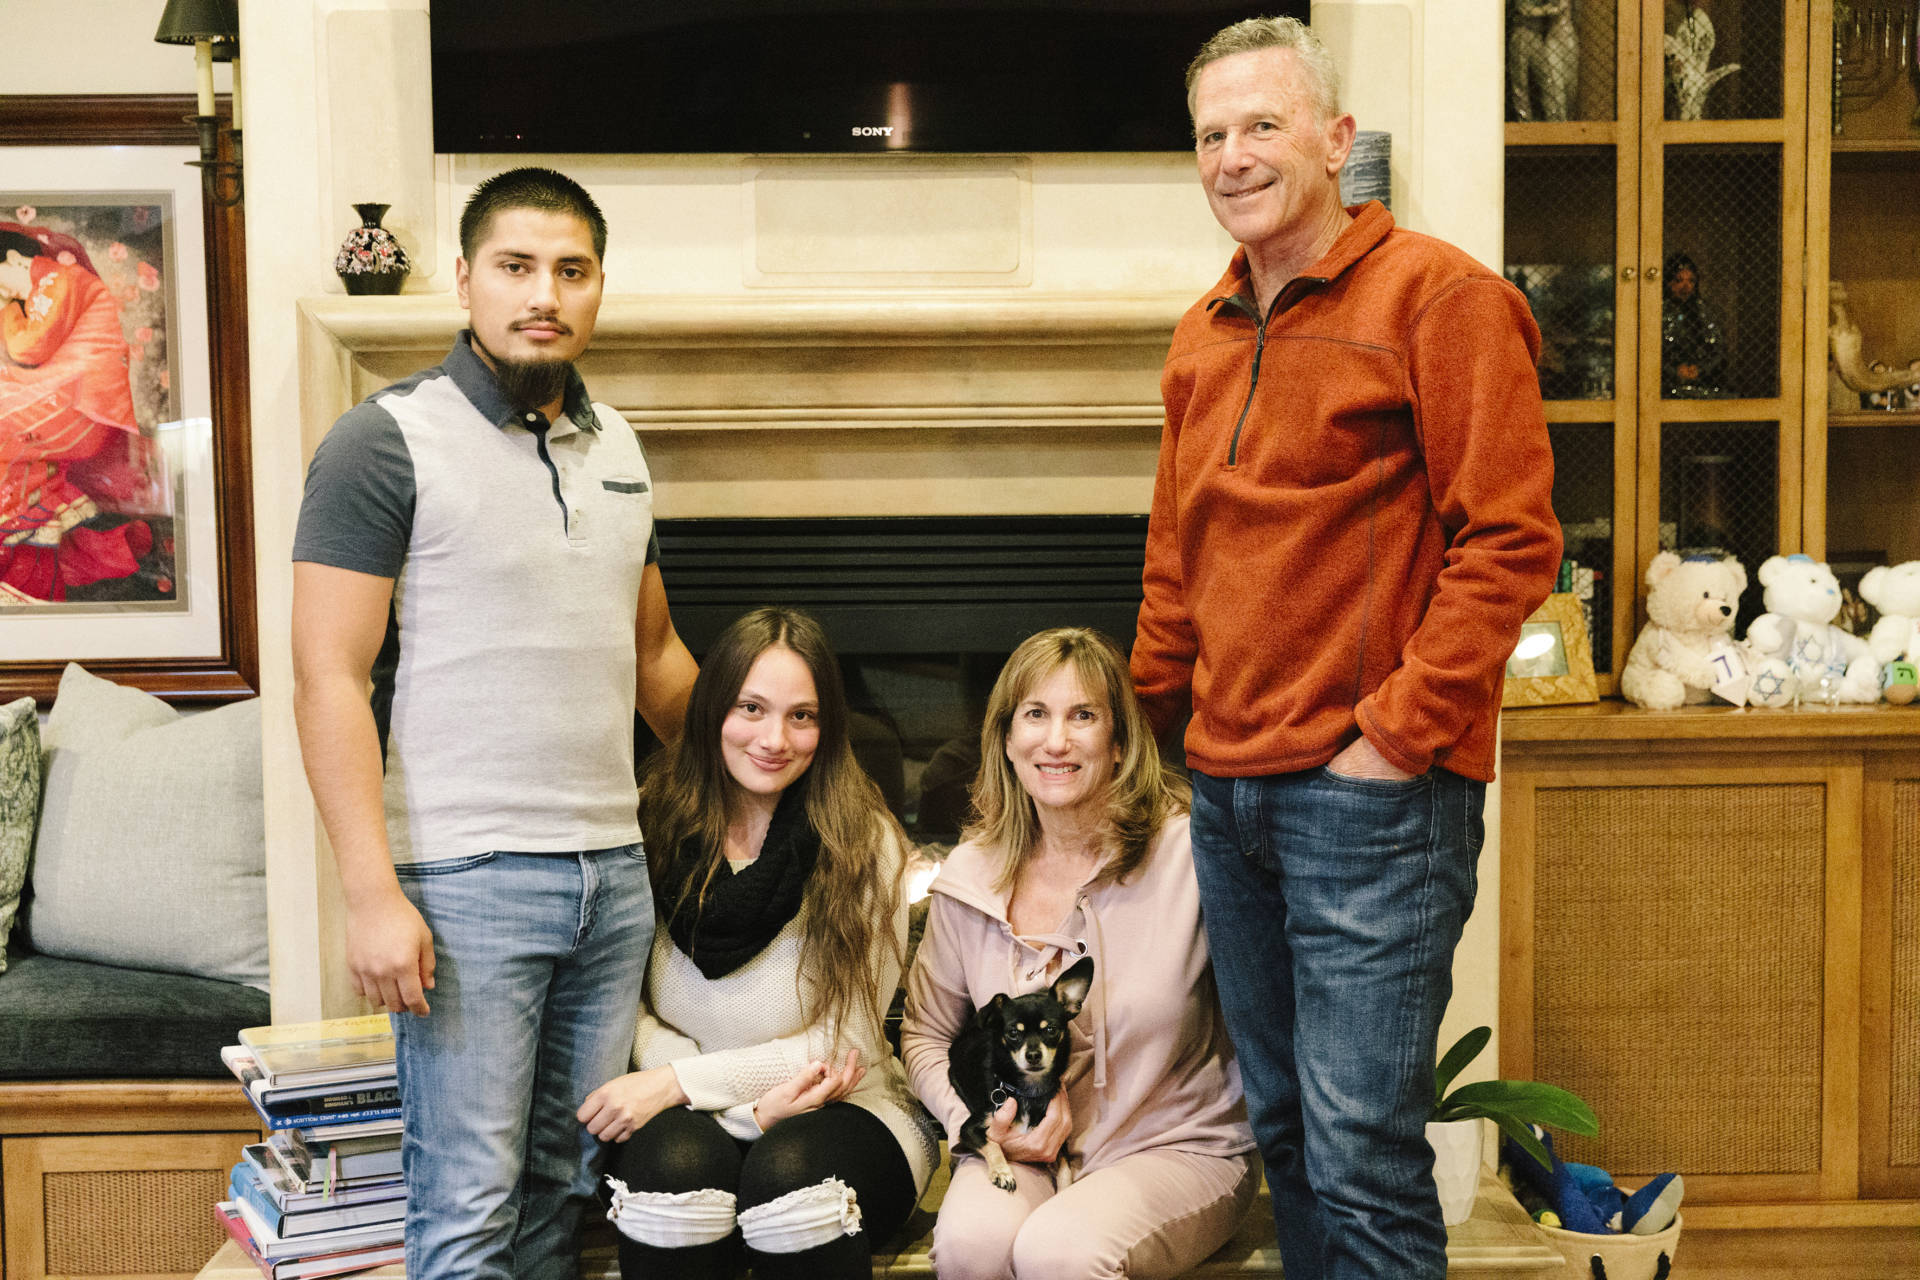 """Bryan and Helen Lopez (left) had been living in their car before they moved in with Marlene and Michael Rapkin in September. As part of Host Home Program in Los Angeles, the plan was to stay with the Rapkins for about three months, but they are staying longer. """"We're open to extend it as long as they're committed to doing what they're doing, which they are,"""" Marlene says. Liz Kuball/NPR"""